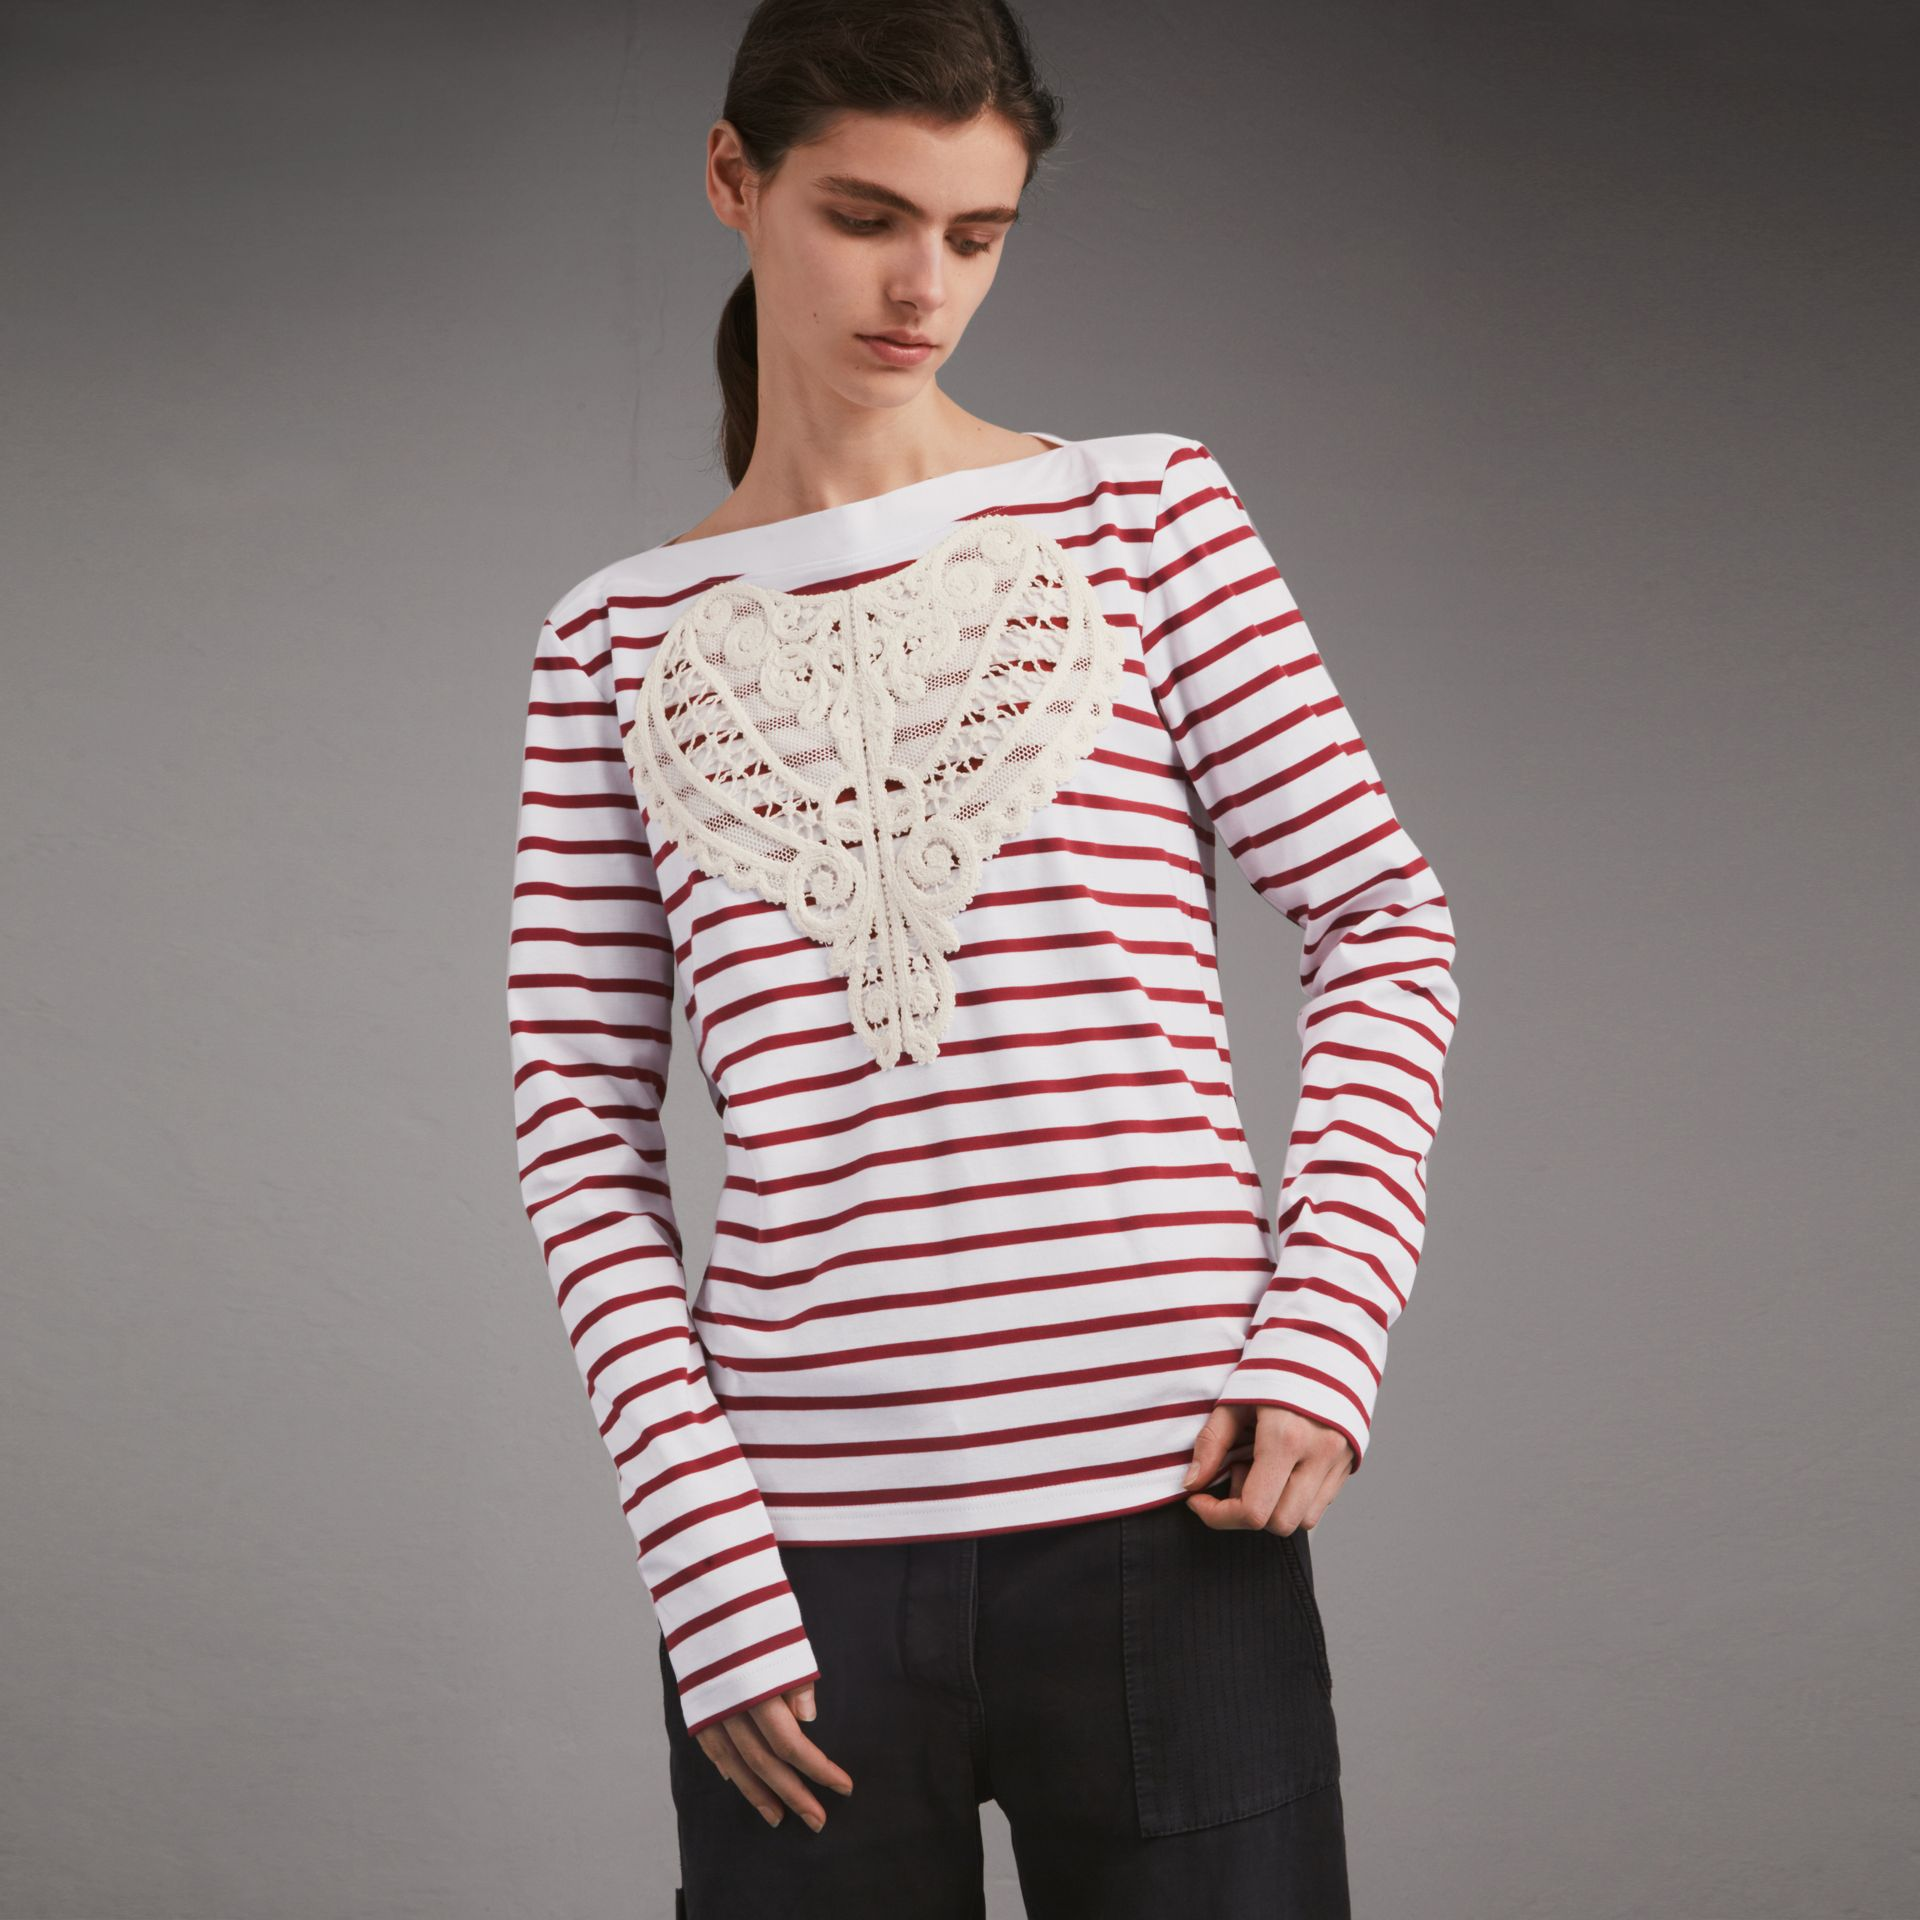 Unisex Breton Stripe Cotton Top with Lace Appliqué - Women | Burberry - gallery image 1